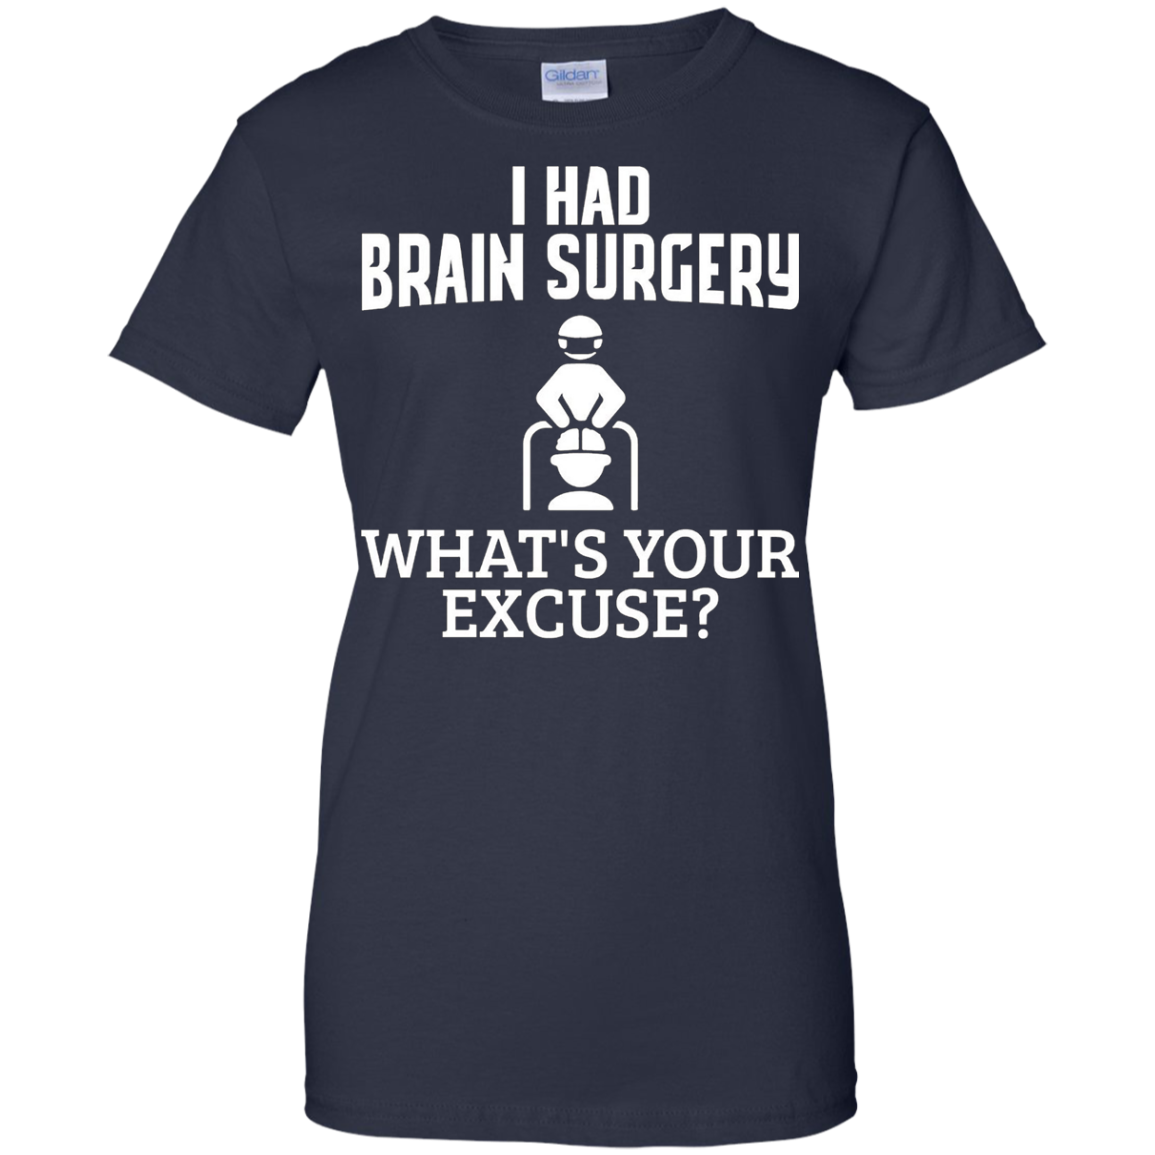 I had brain surgery what's your excuse cancer funny t-shirt